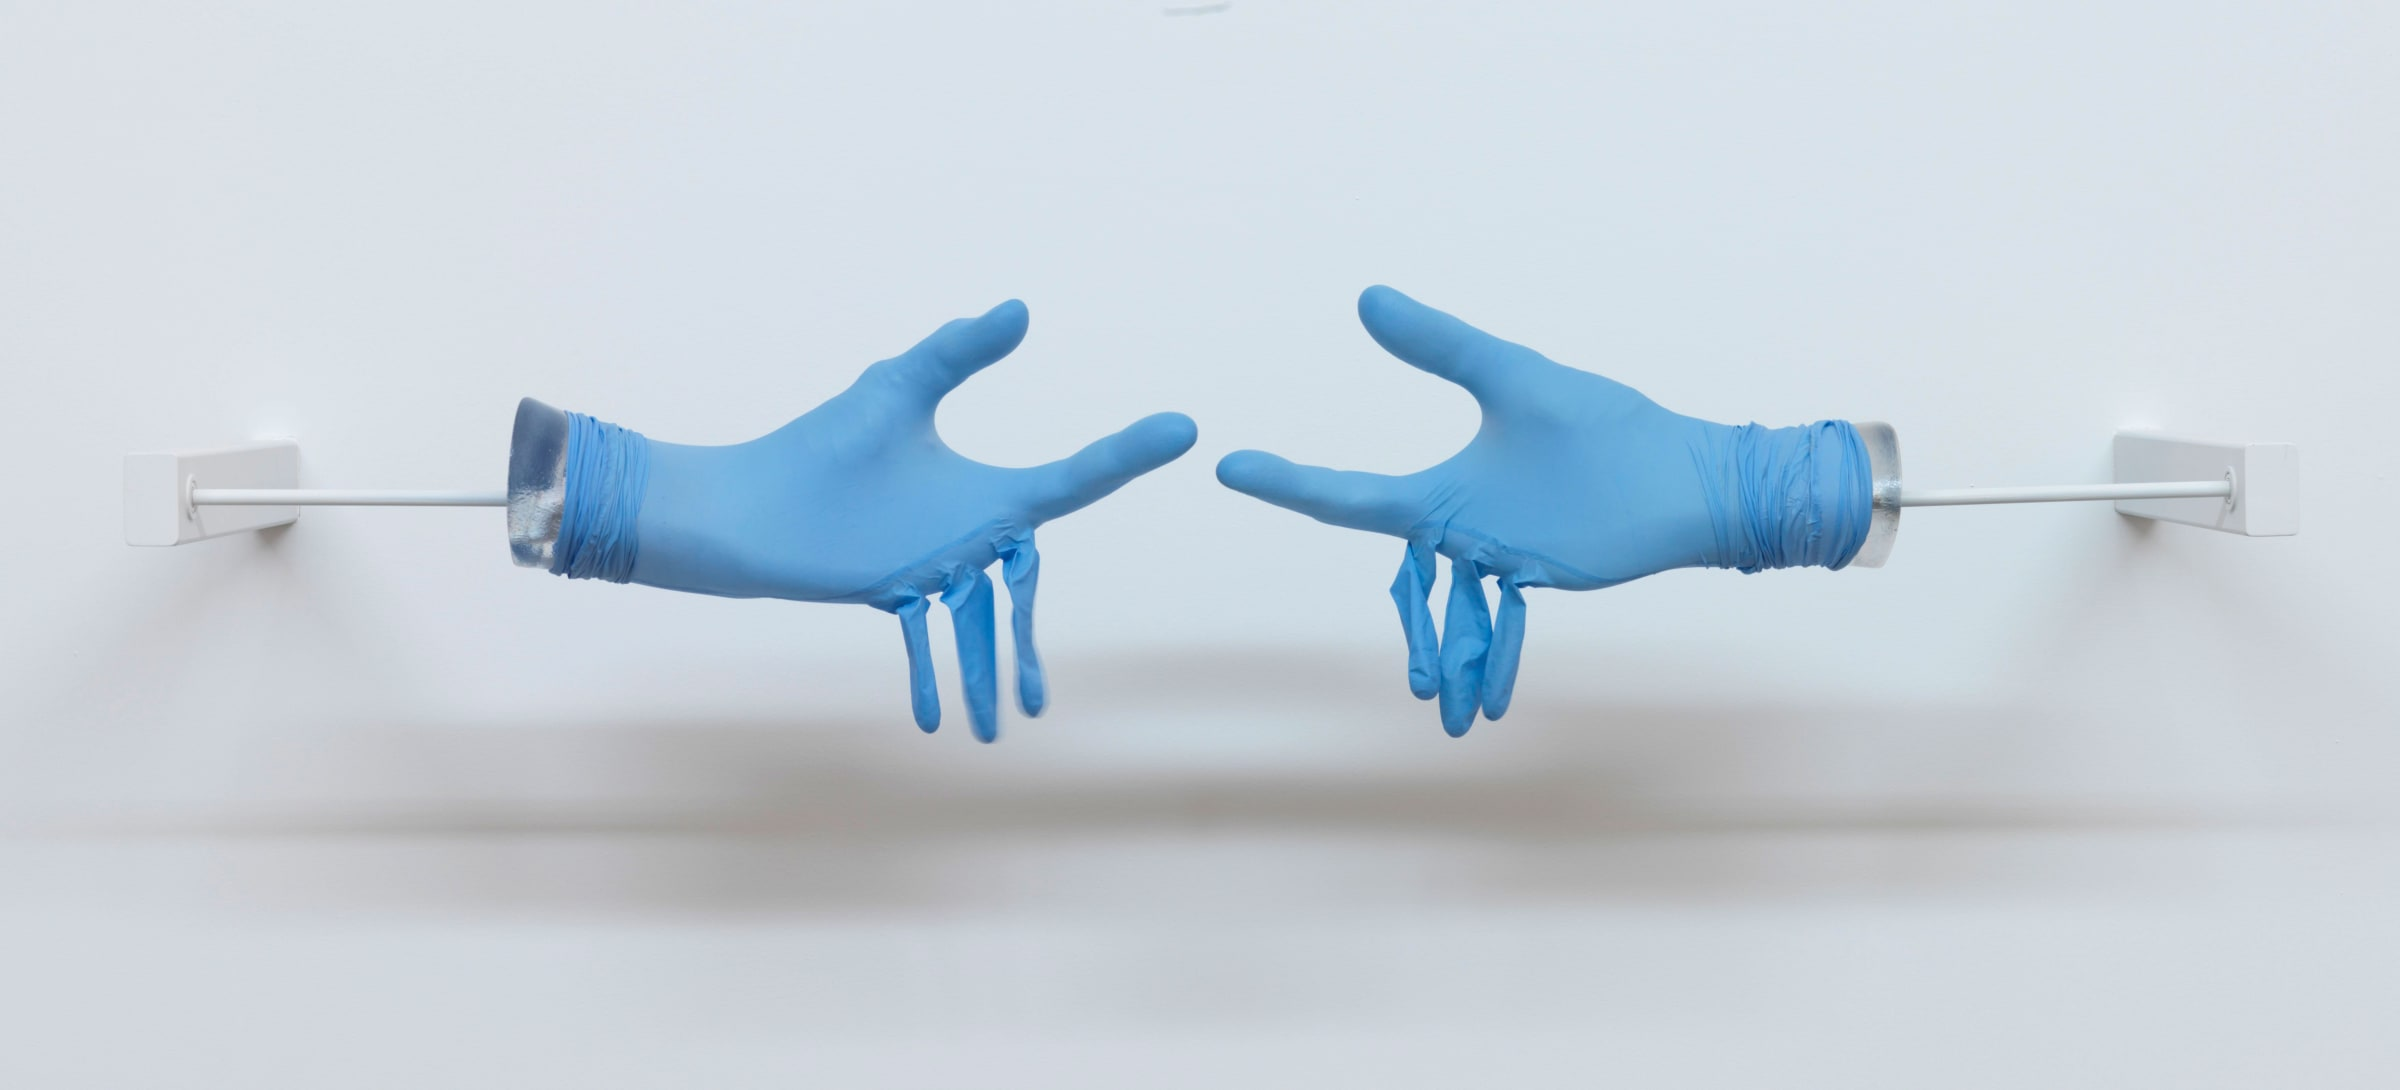 Two blue medical gloves are stretched over plaster hands reaching for each other. The middle, ring and pinky finger are empty and hang limply.